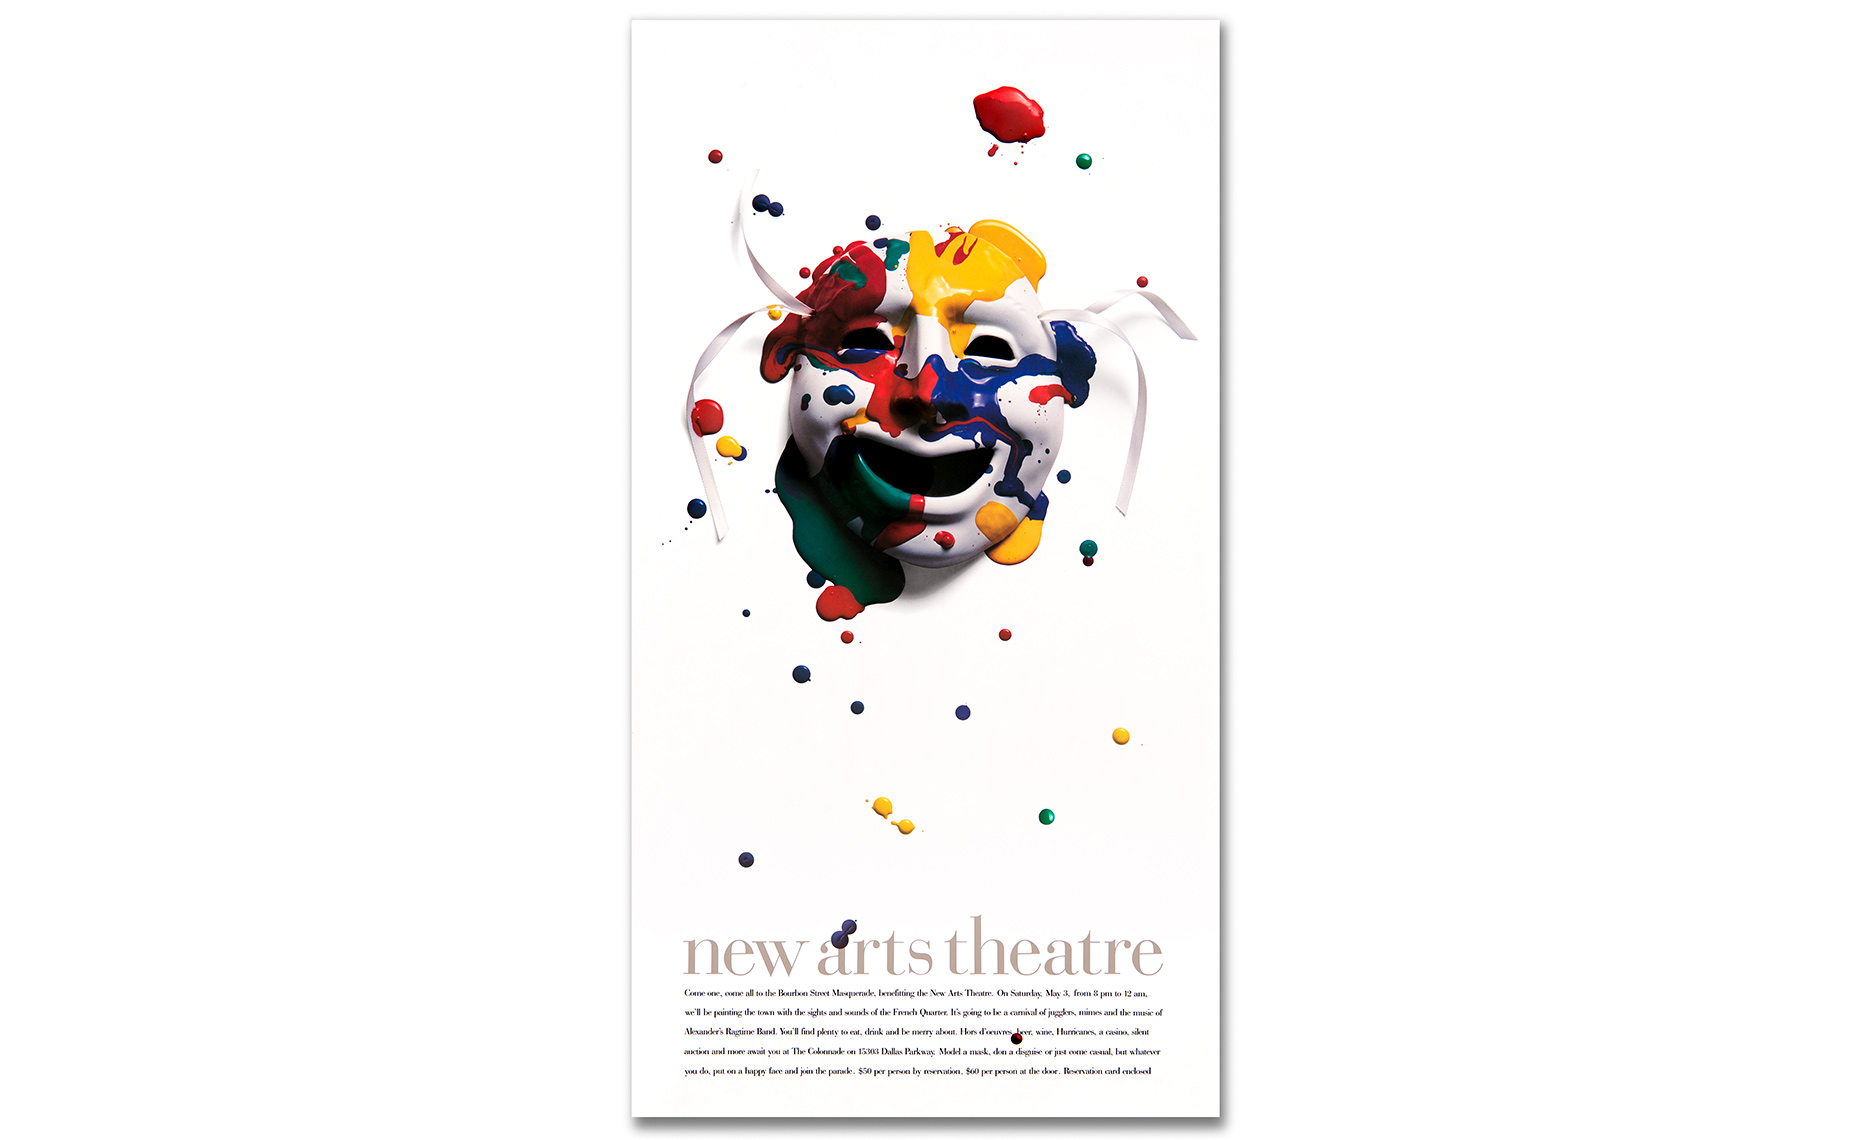 Poster for The New Arts Theatre